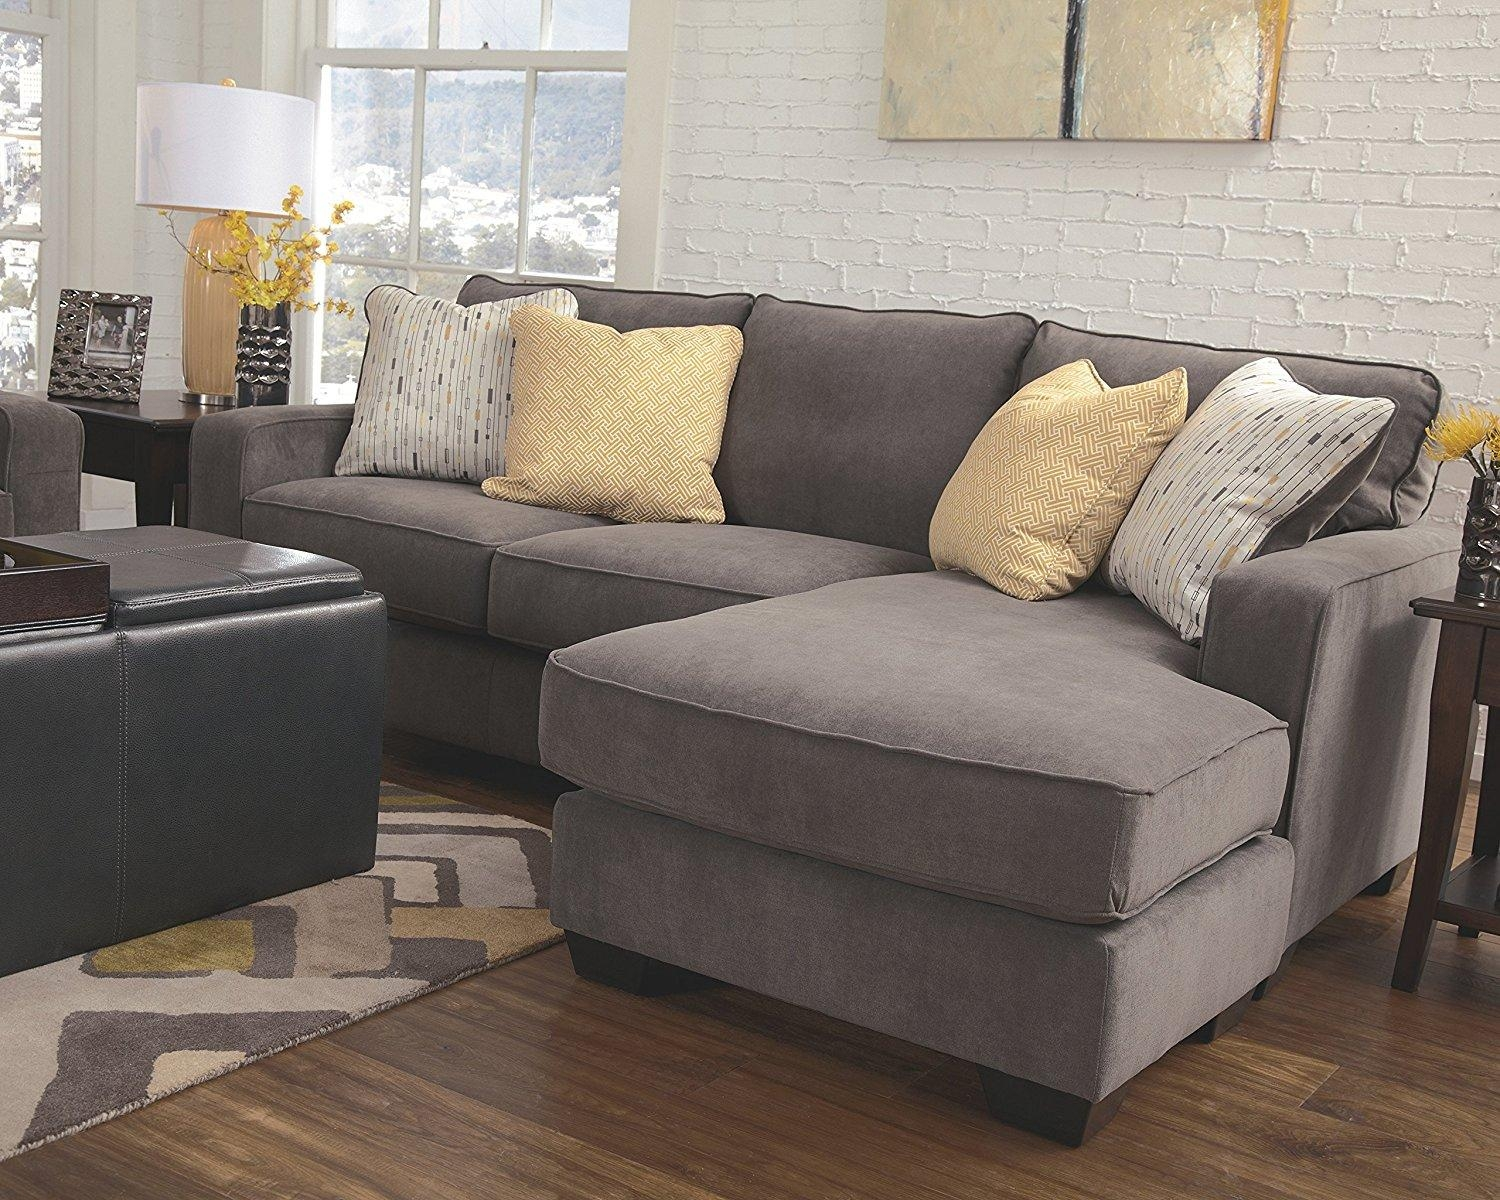 Furniture: Fascinating Grey Sectional Costco With Pattern Rug Also With Costco Wall Art (View 14 of 20)